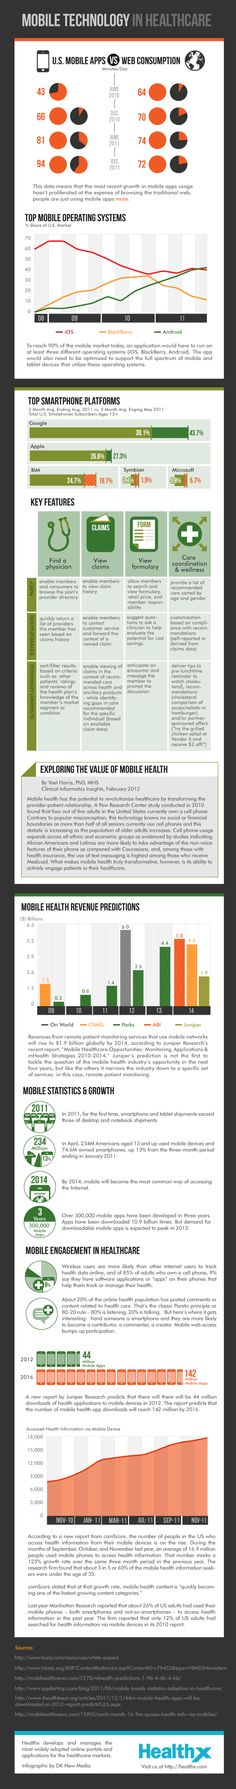 [Infographic] Mobile Technology in Healthcare